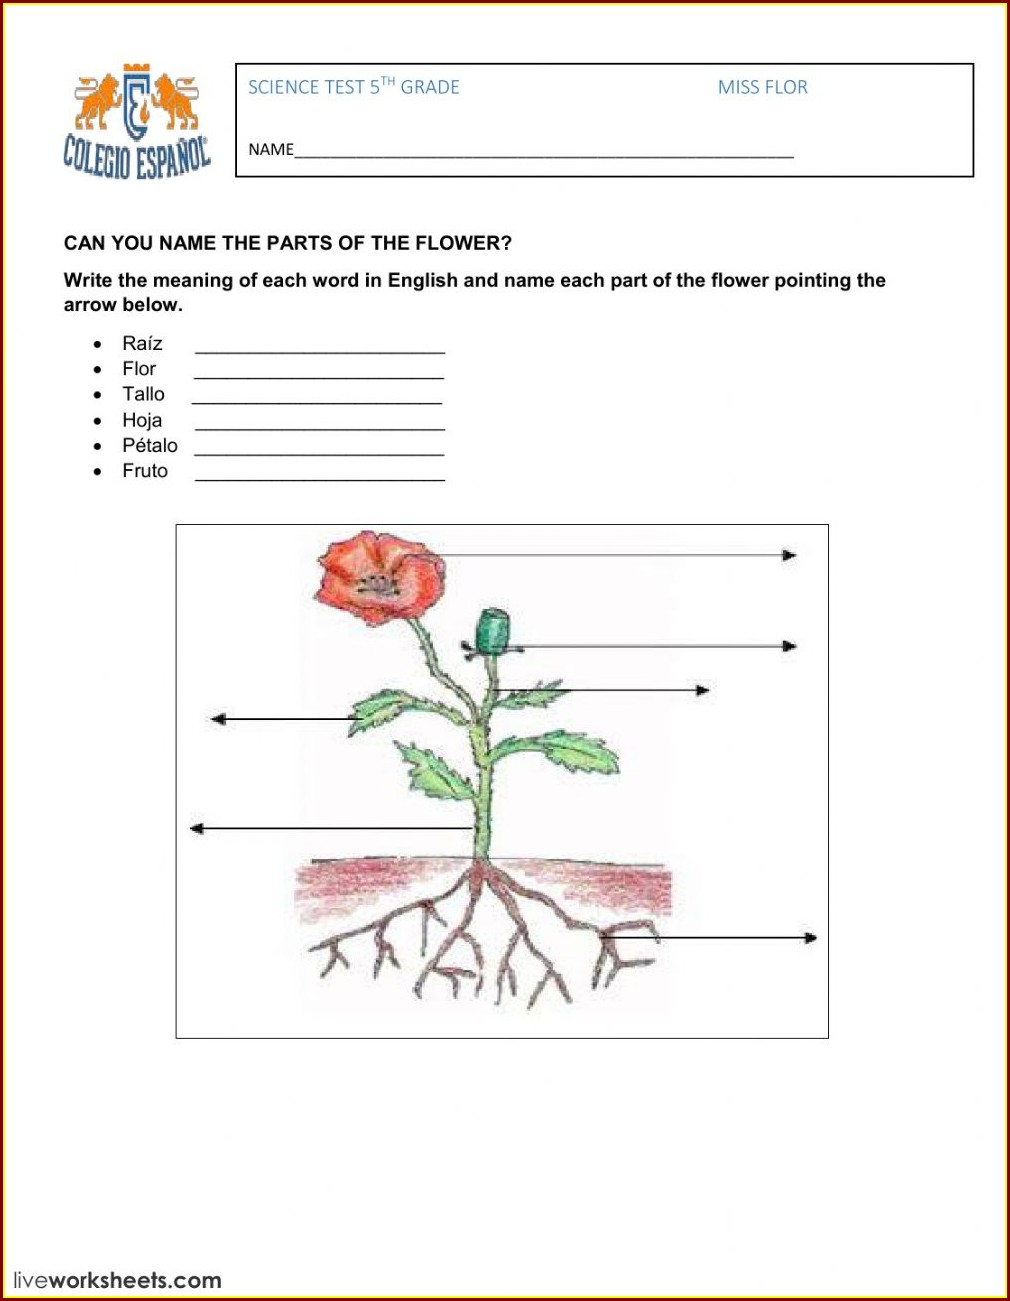 5th Grade Science Worksheets On Plants